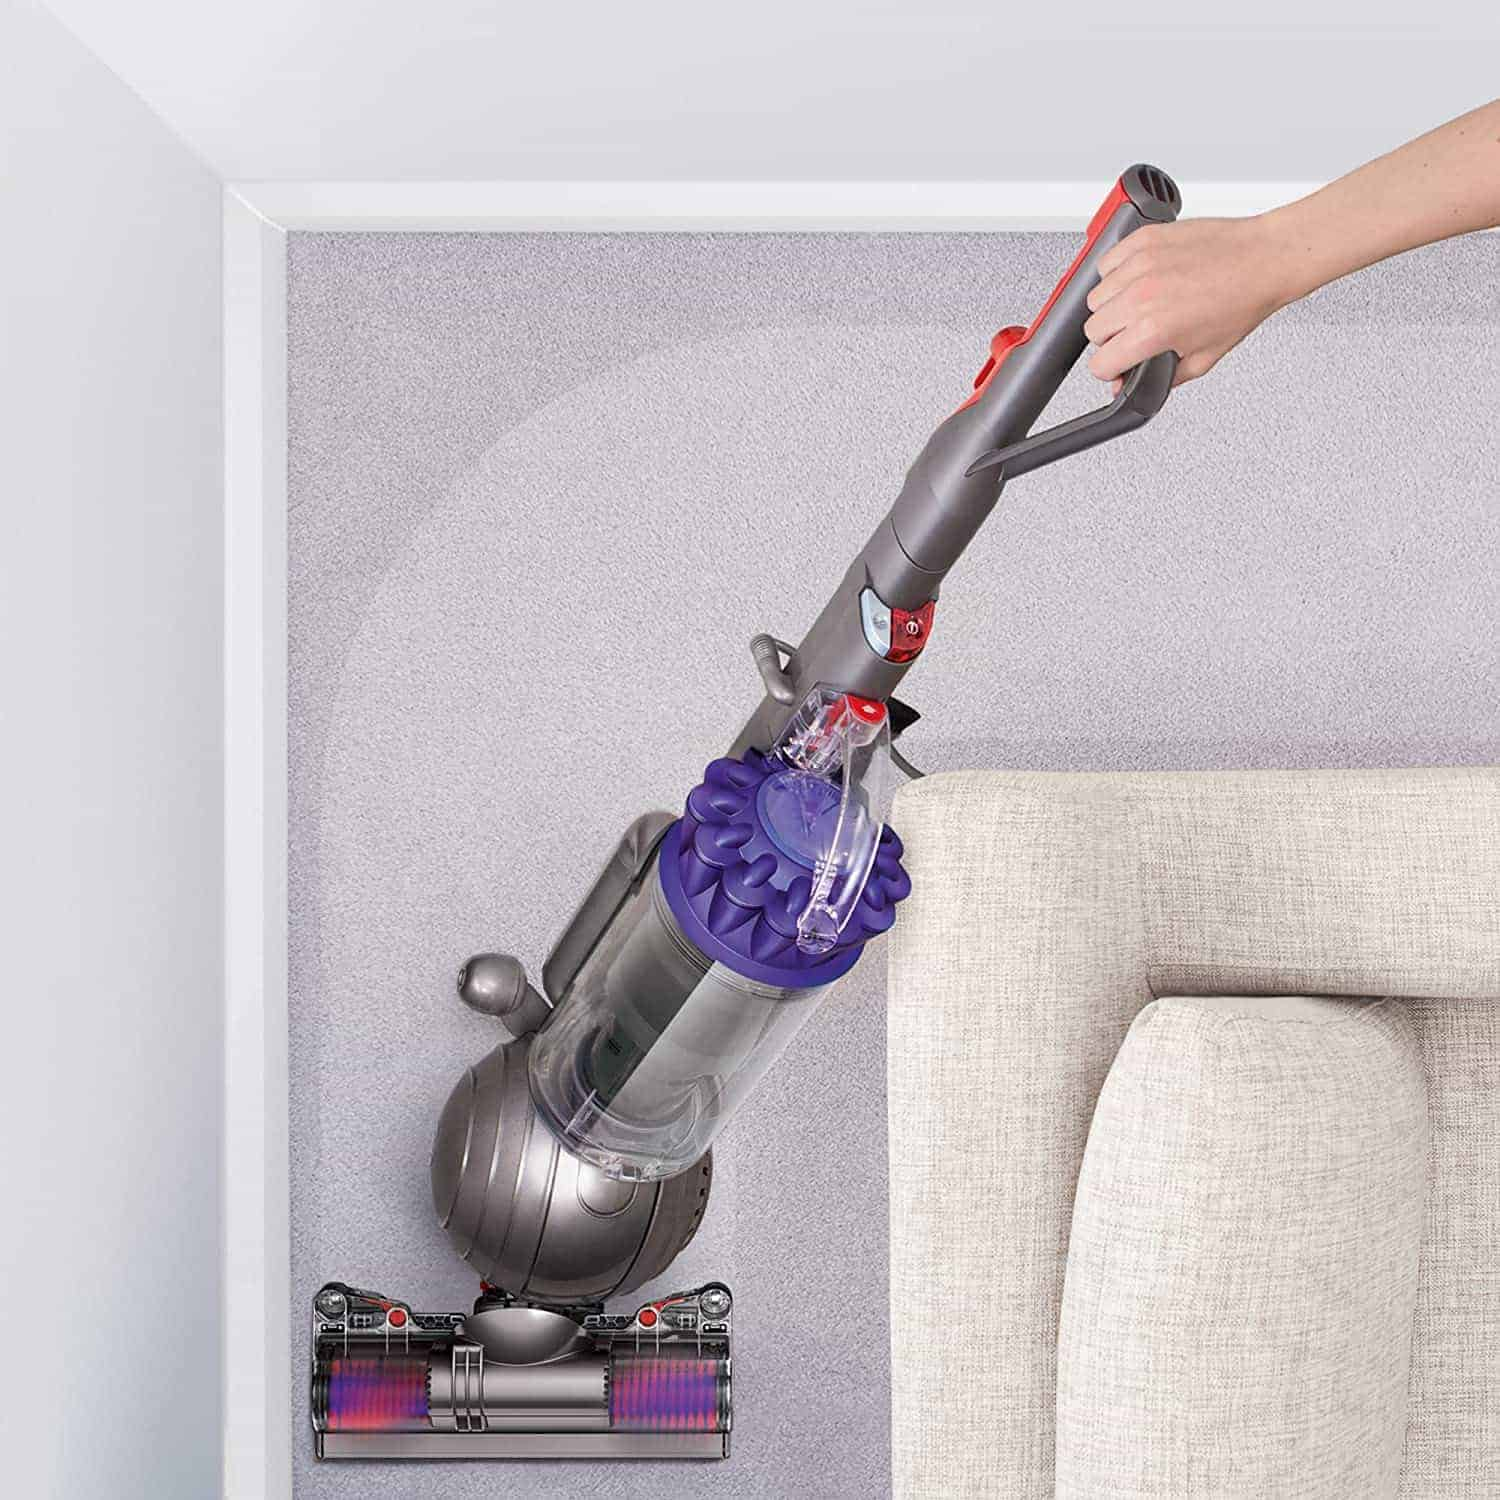 Best Hepa filter: Dyson Ball Animal 2 Upright Vacuum